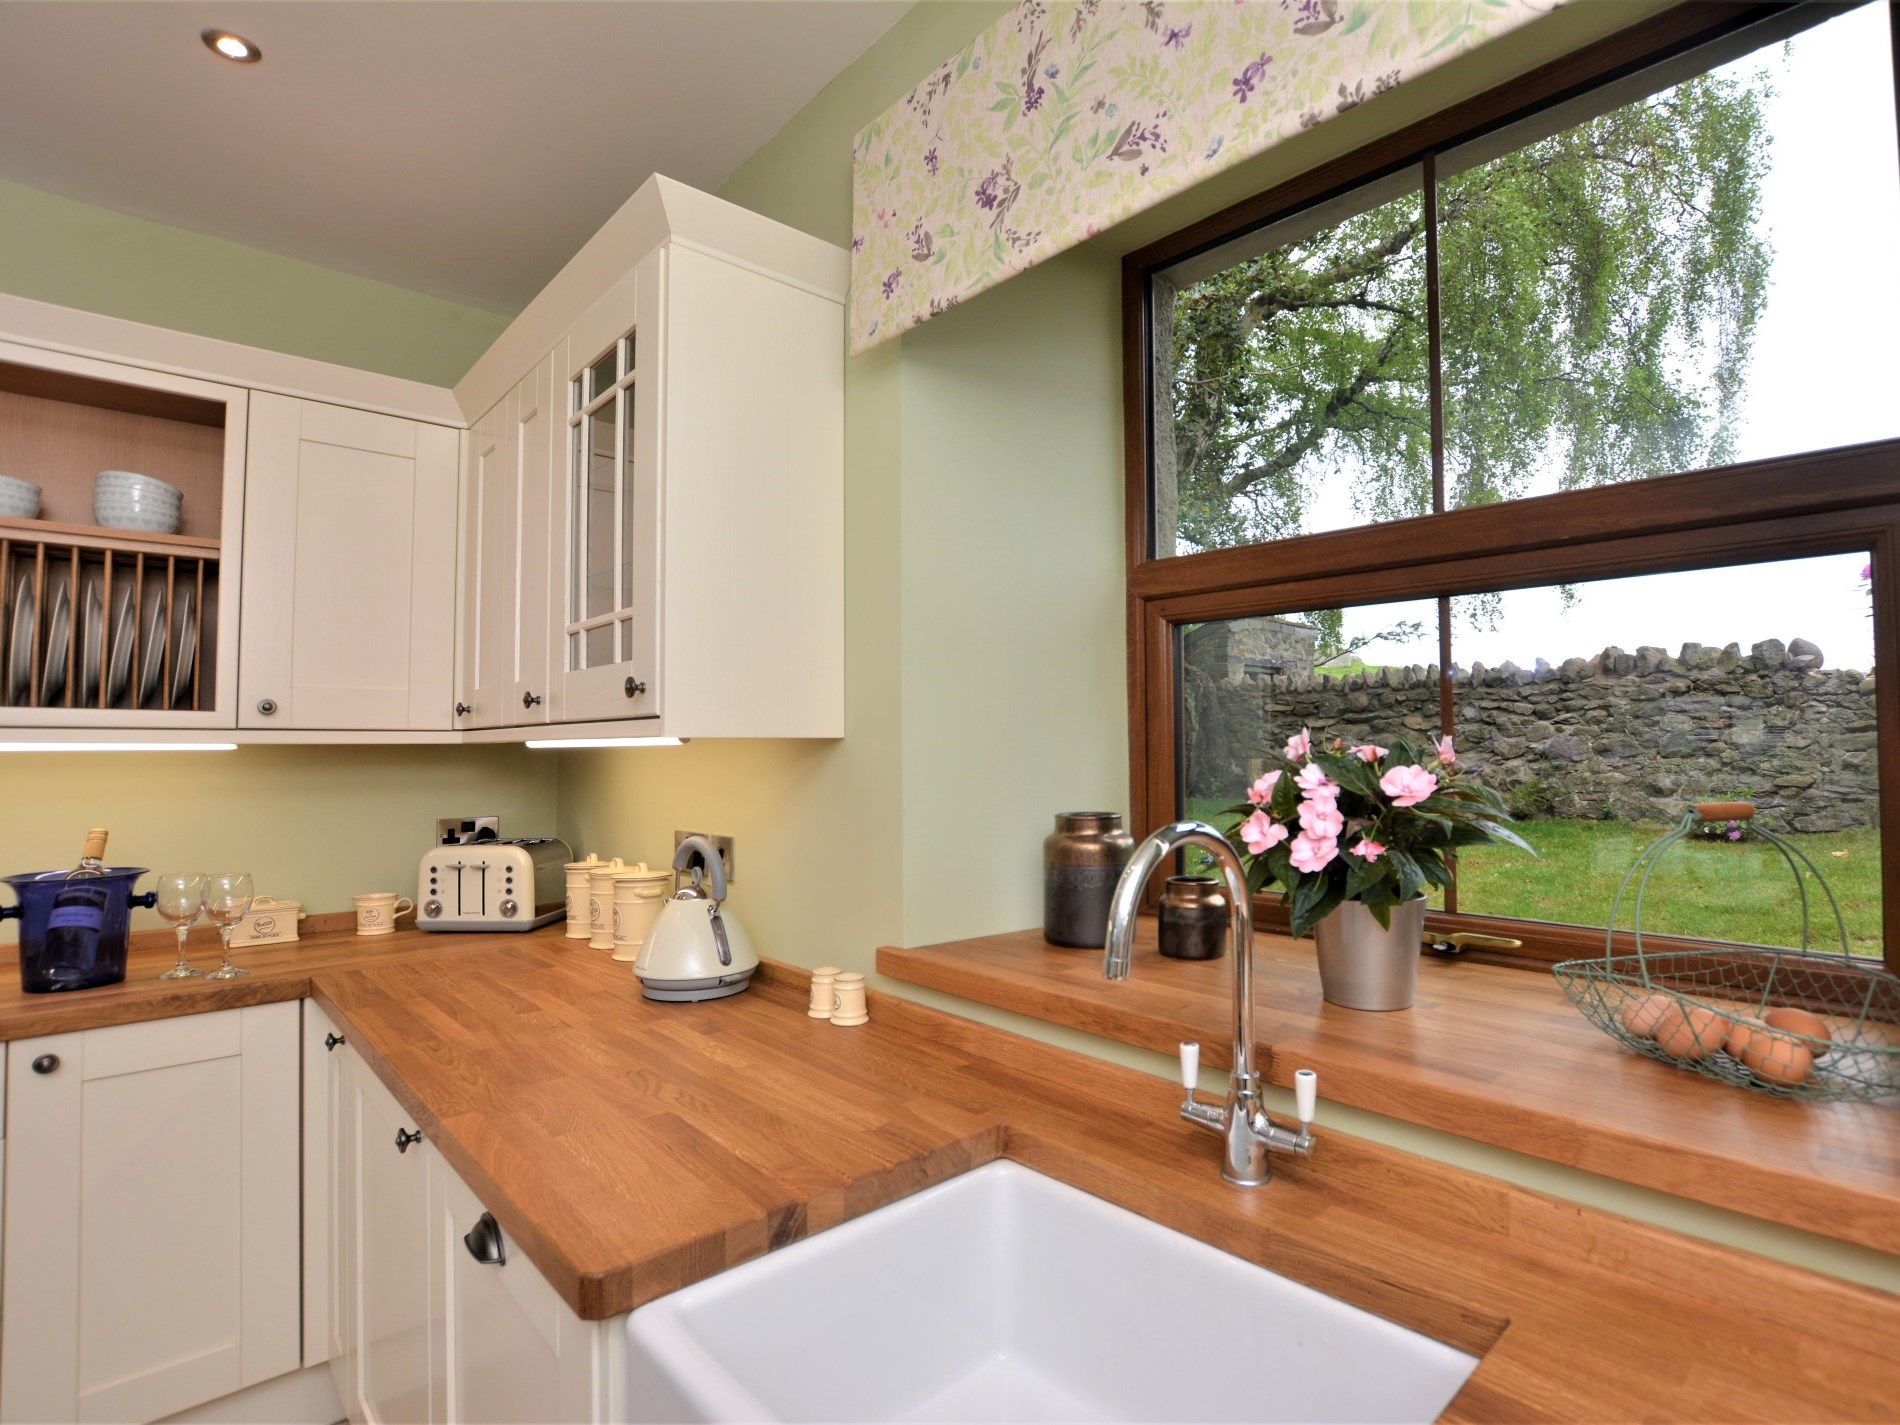 4 Bedroom Cottage in Conwy, Snowdonia, North Wales and Cheshire